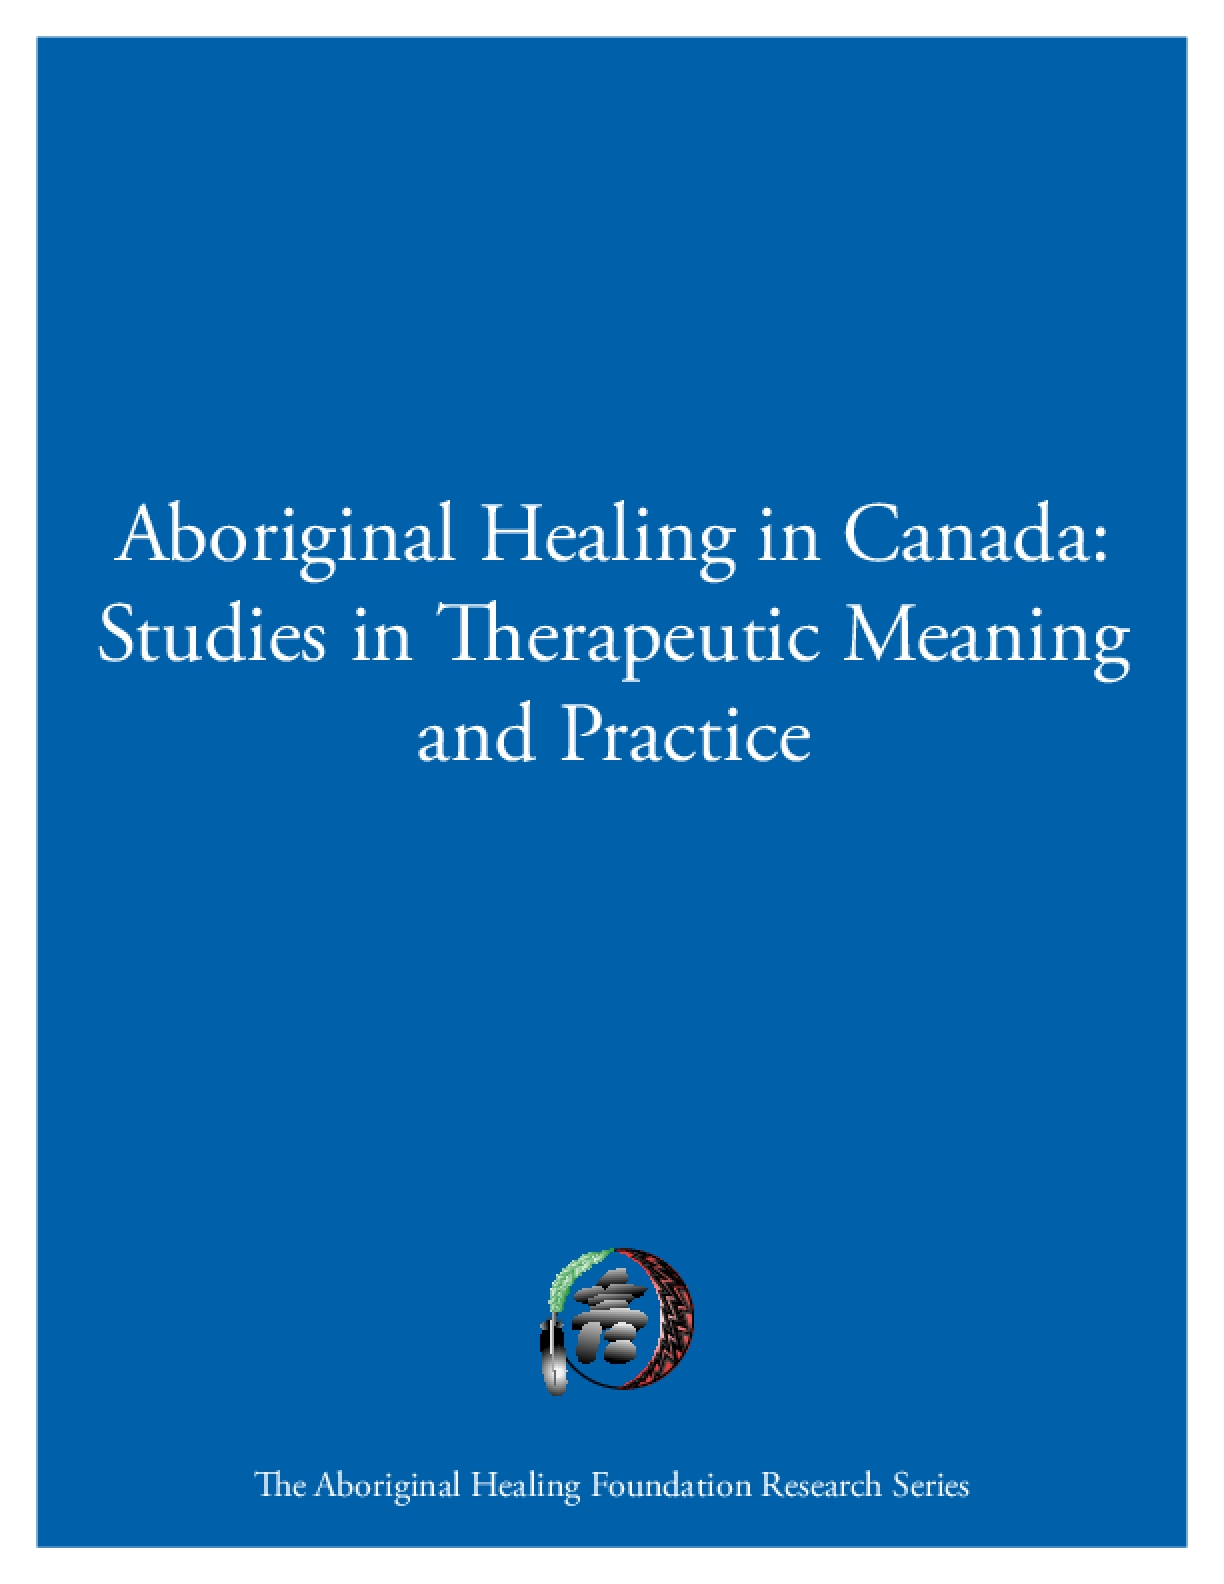 Aboriginal Healing in Canada: Studies in Therapeutic Meaning and Practice